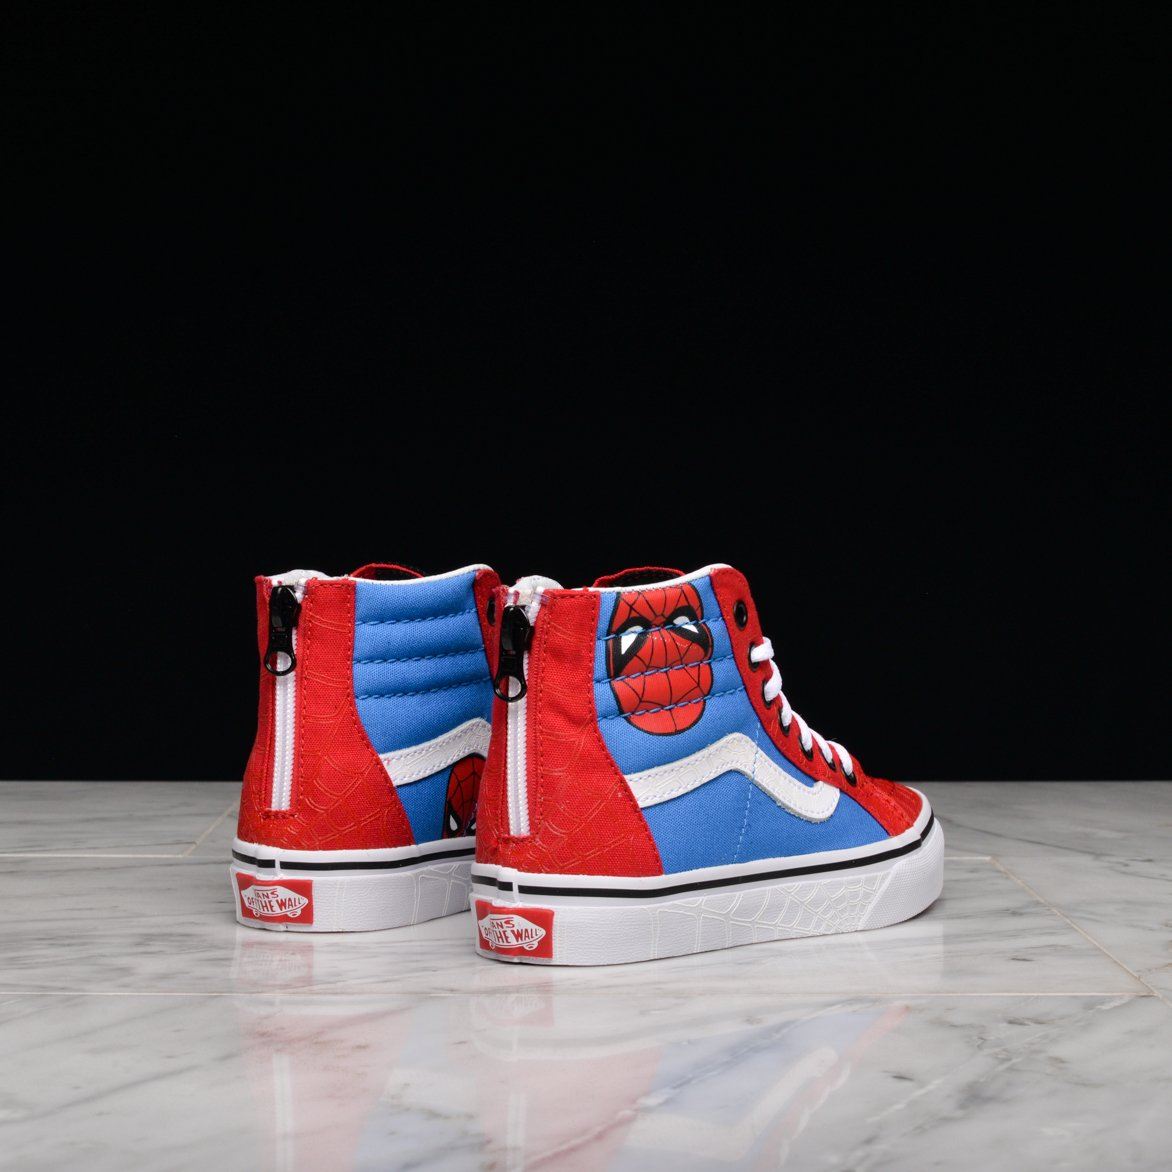 977875cb11b Vans SK8 HI ZIP Marvel Spider-Man Toddler Shoes 5 US 192360441828